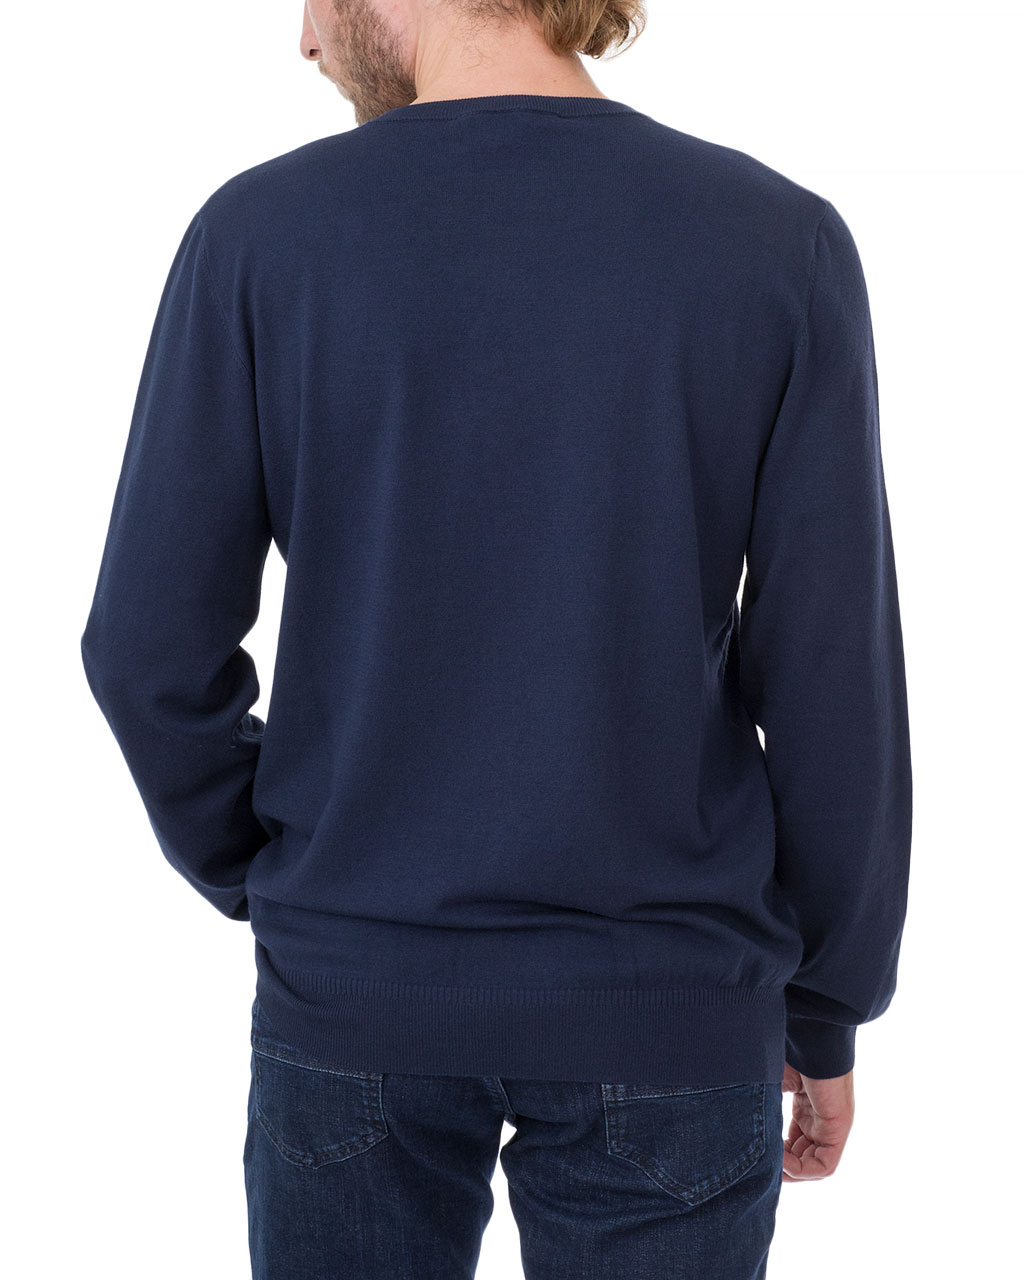 Men's jumper 52M00231-OF000433-U290/19-20 (6)